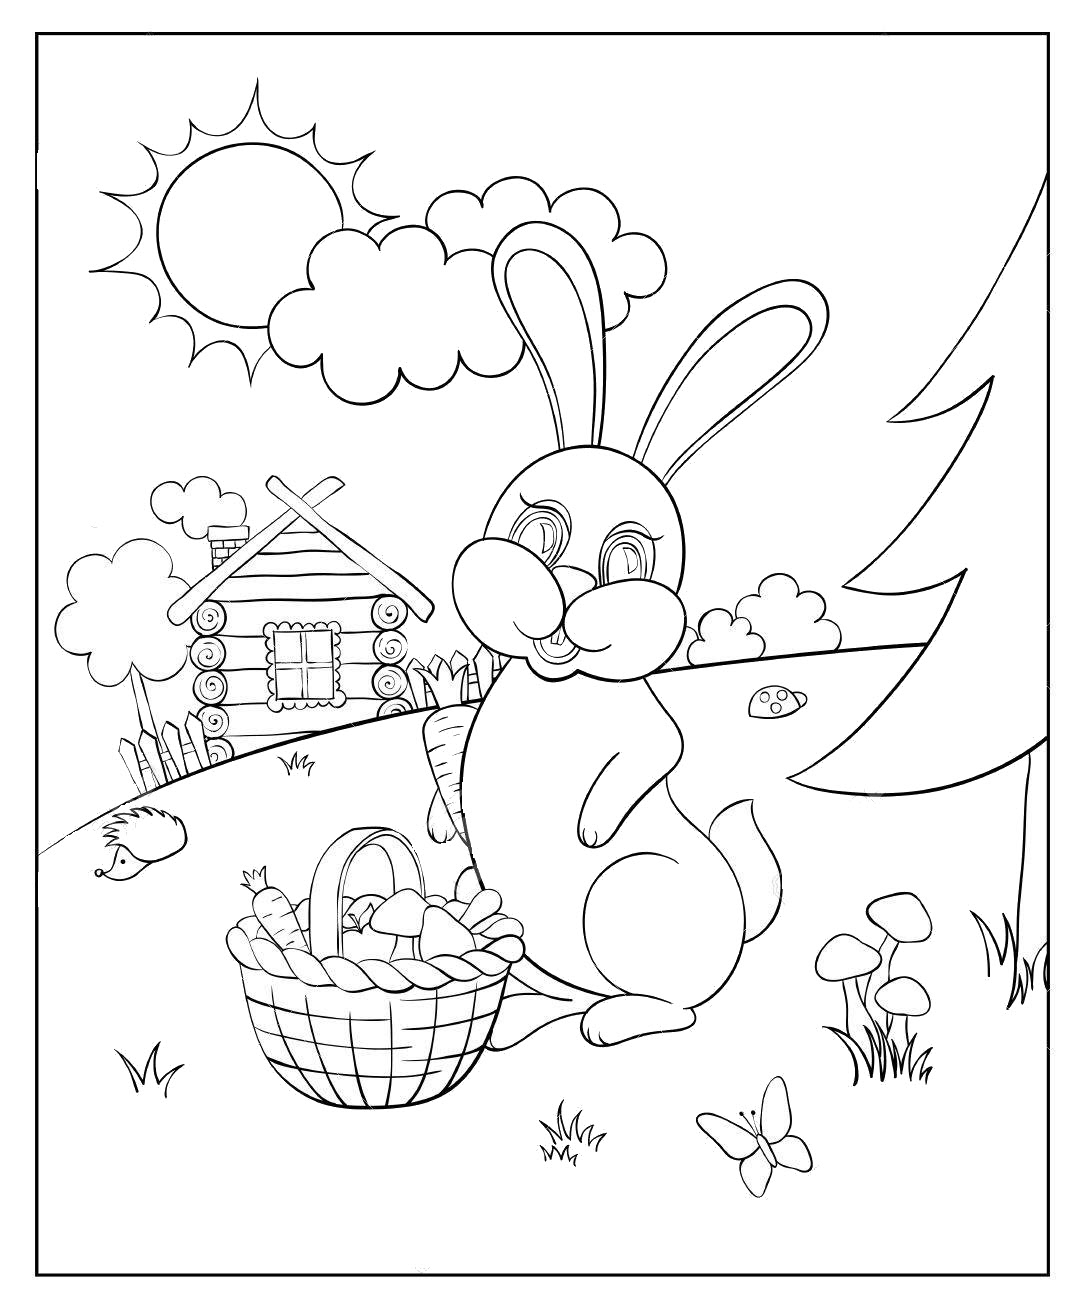 Coloring for kids with rabbit and carrots